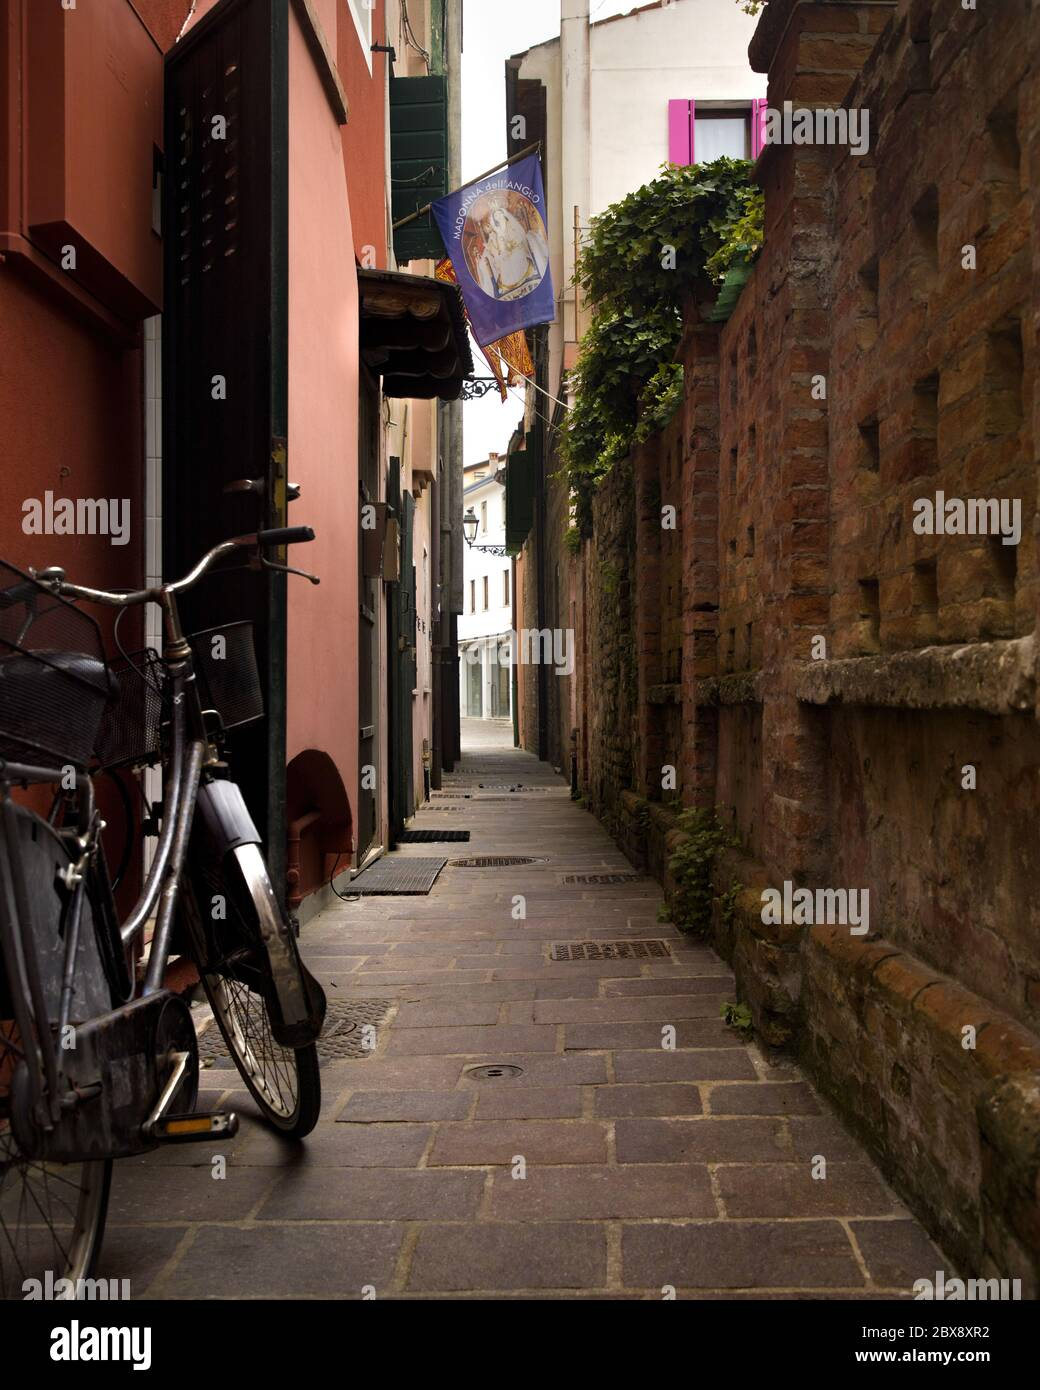 Tourism in Veneto and point of interest among the narrow alleys  and maritme houses to Caorle seaport with bicycles  and colored houses. Stock Photo